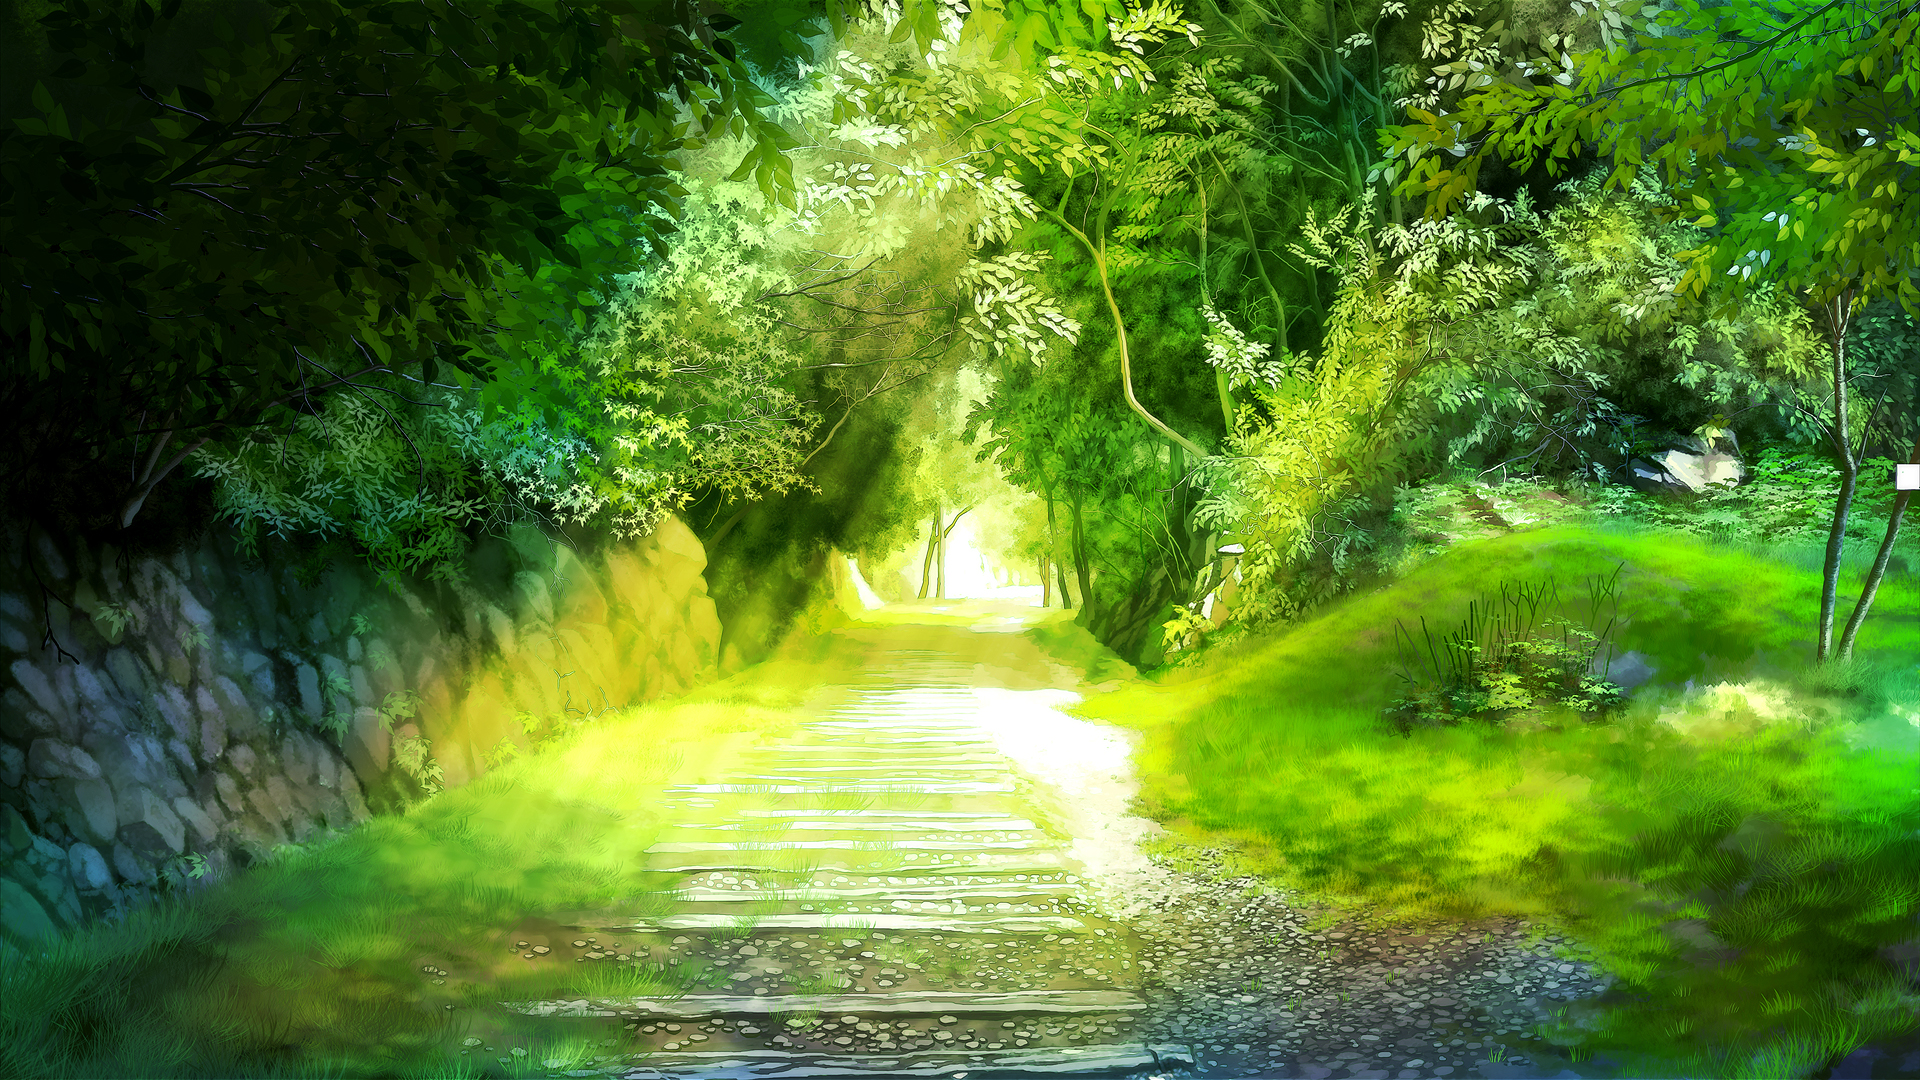 Free Download Nature Anime Scenery Background Wallpaper Resources 1920x1080 For Your Desktop Mobile Tablet Explore 73 Background Scenery Beautiful Wallpapers For Desktop Full Screen Most Stunning Wallpapers